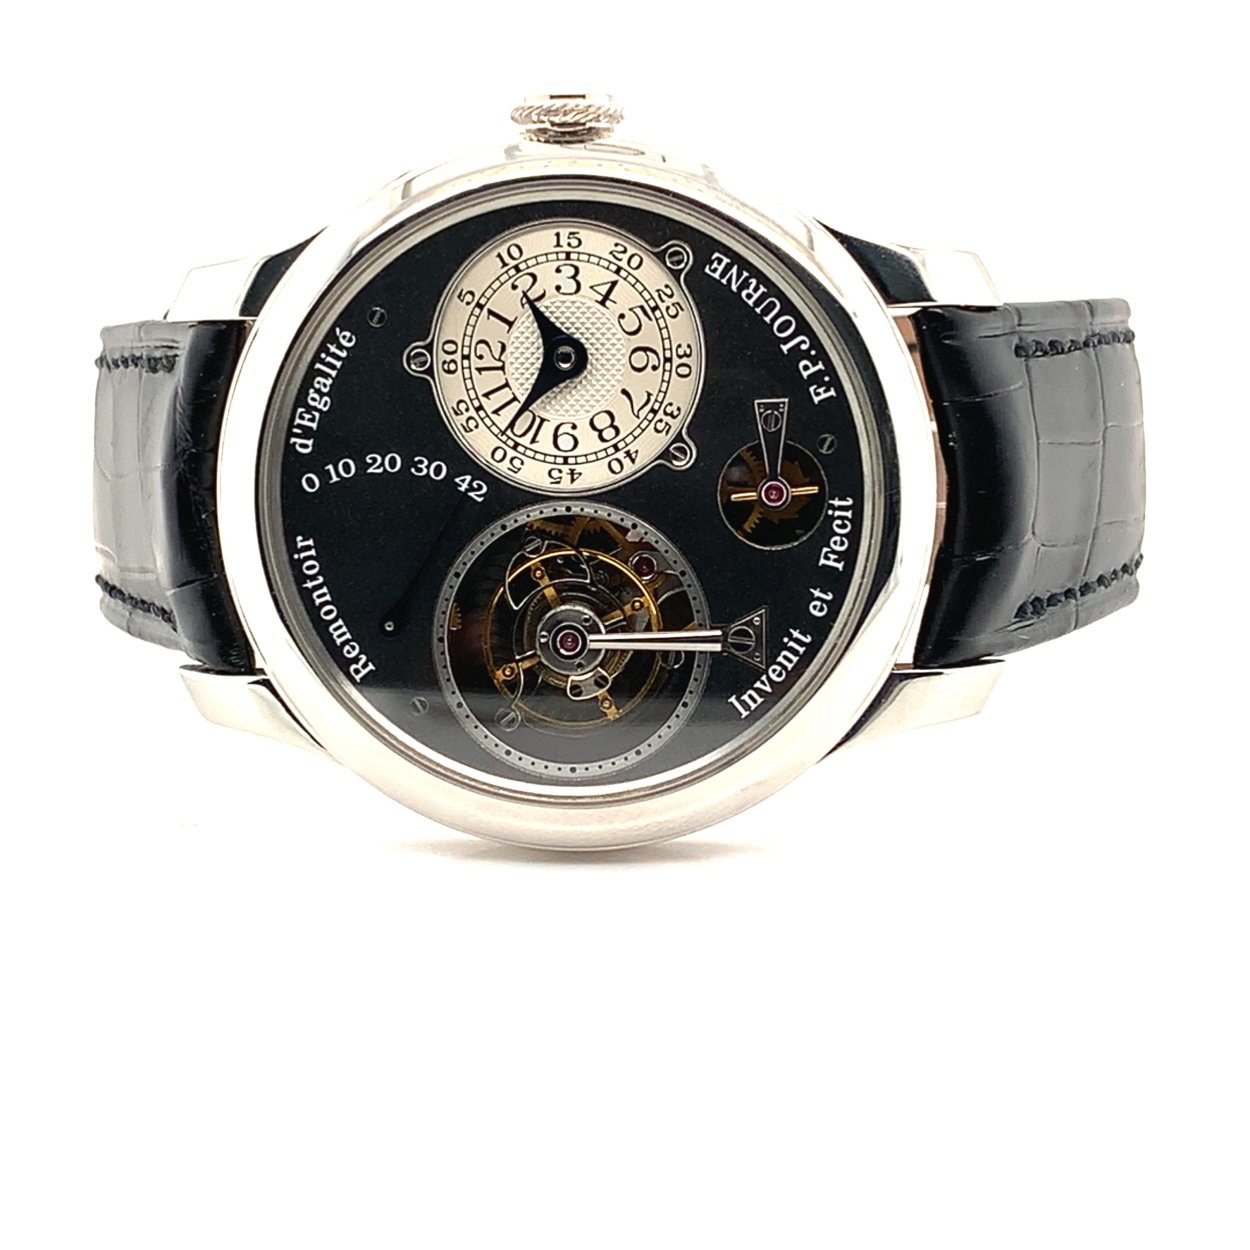 Auction Vente n°104 - Montres anciennes at Dr. Crott Auctioneers : 462 lots